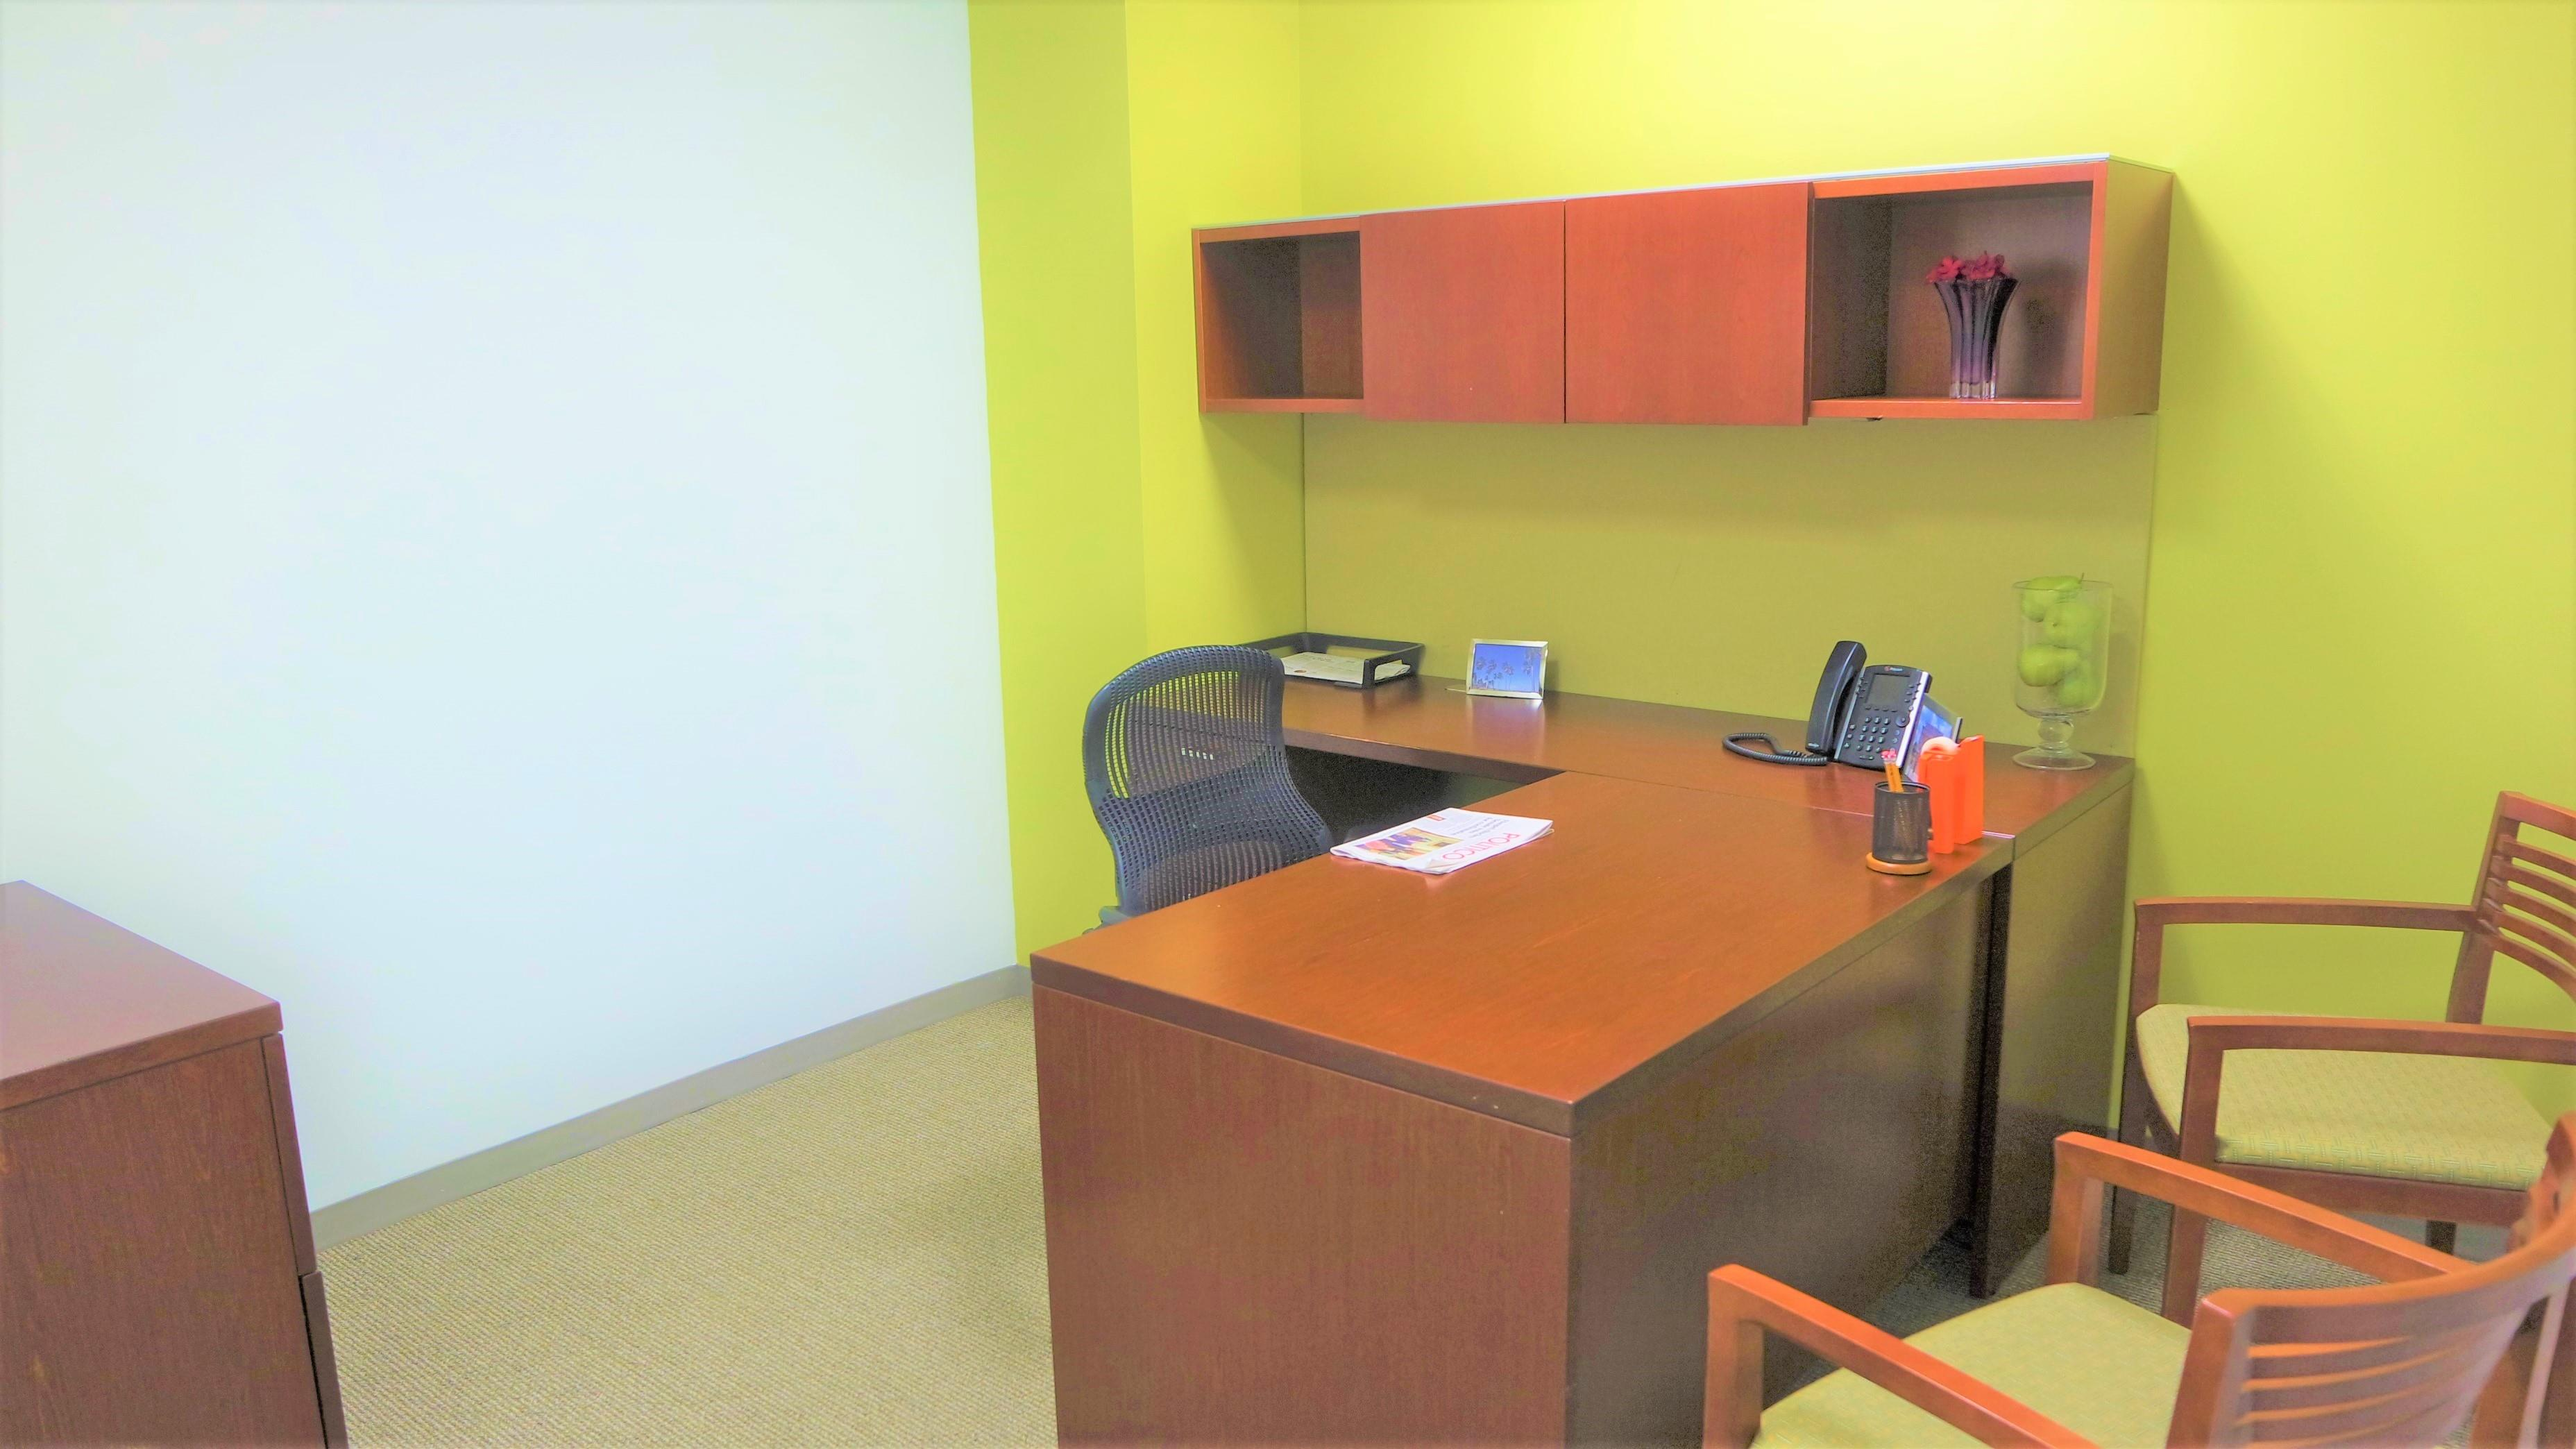 Carr Workplaces - The Willard - Interior Offices 408 & 408A